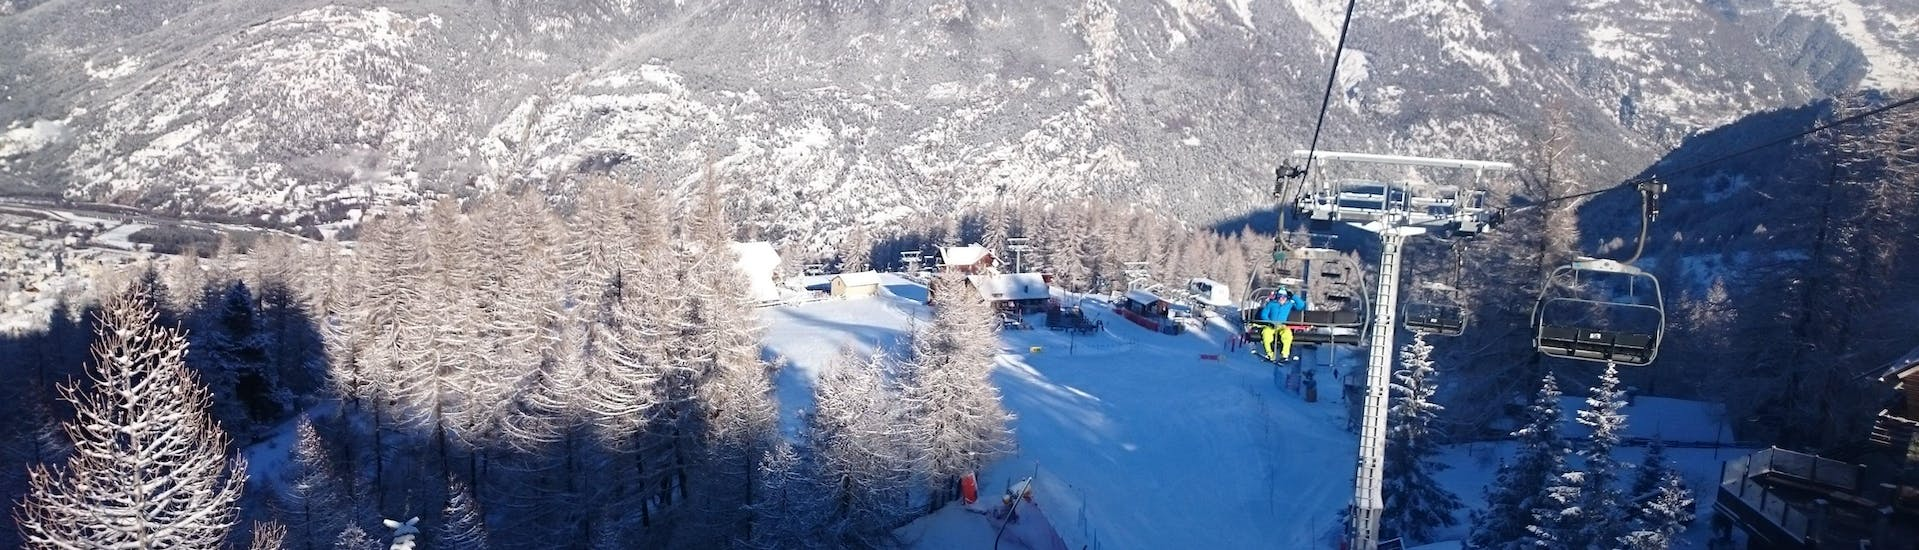 An image of a chair lift in the Italian ski resort of Sauze d'Oulx, where local ski schools take people for their ski lessons.